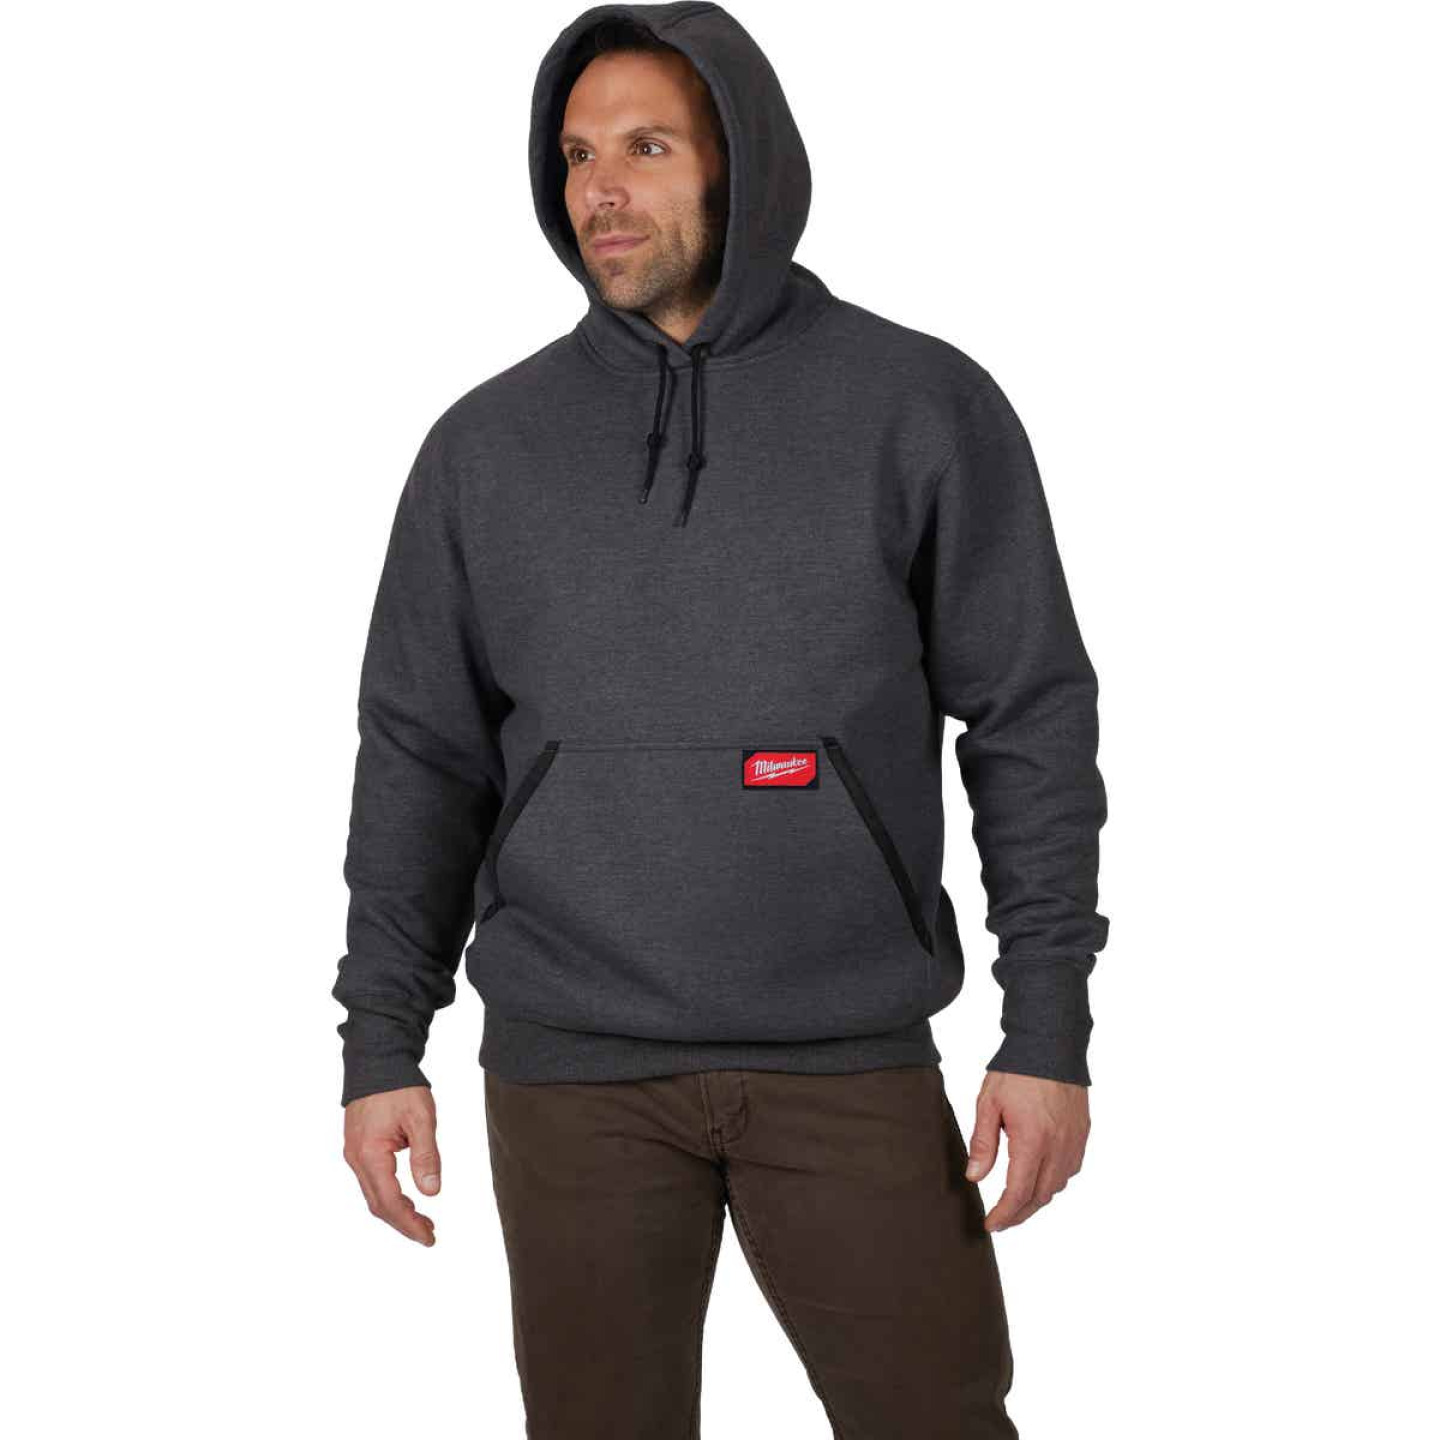 Milwaukee Medium Gray Heavy-Duty Pullover Hooded Sweatshirt Image 4